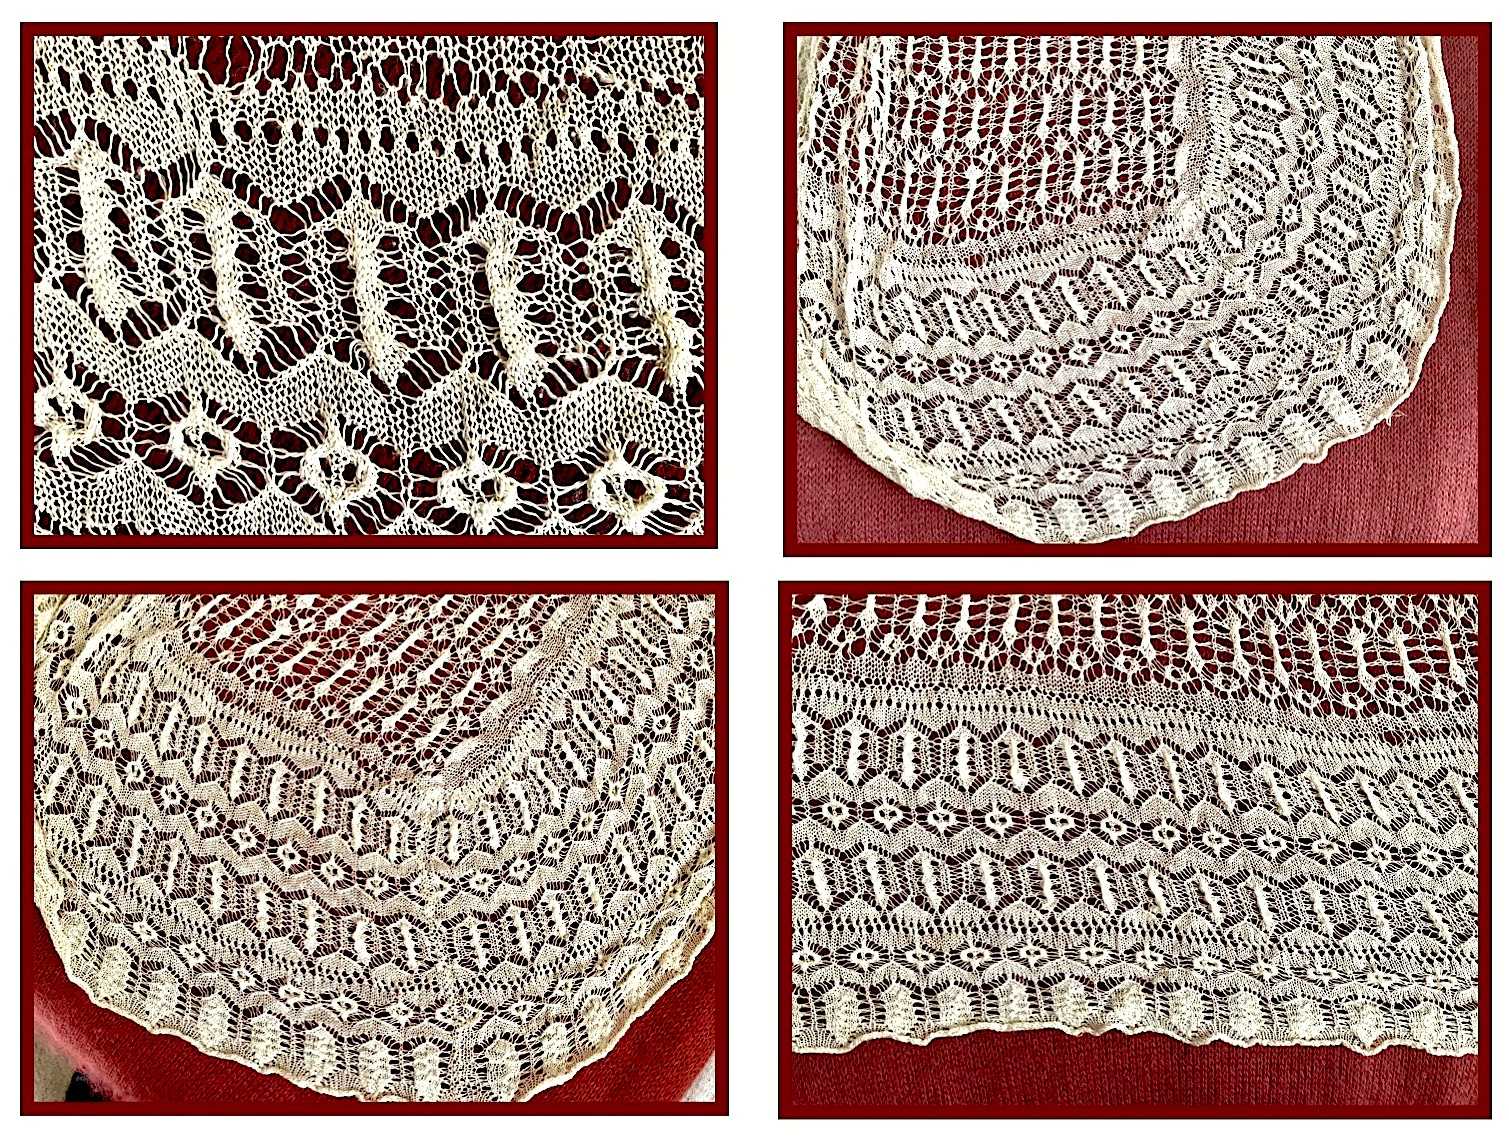 4 Views, Knitted 19th Century Shawl